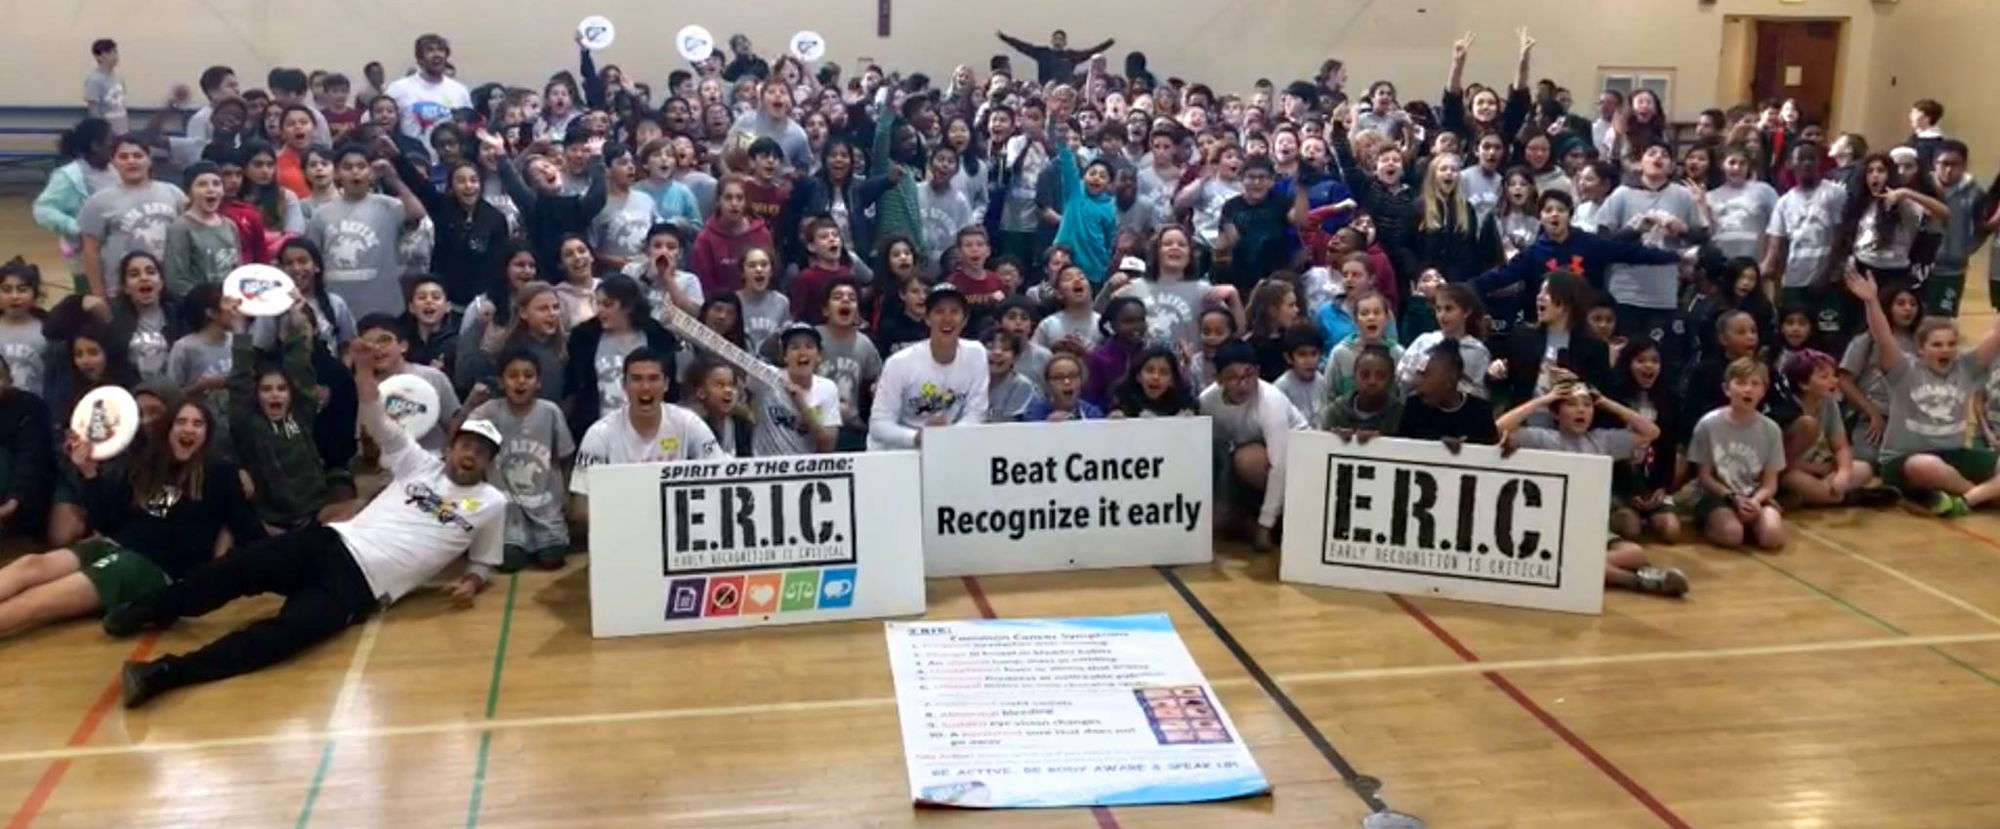 ARIA professional official ultimate flying disc for the sport commonly known as 'ultimate frisbee'  eric E R I C runs camps for cancer recognition partner